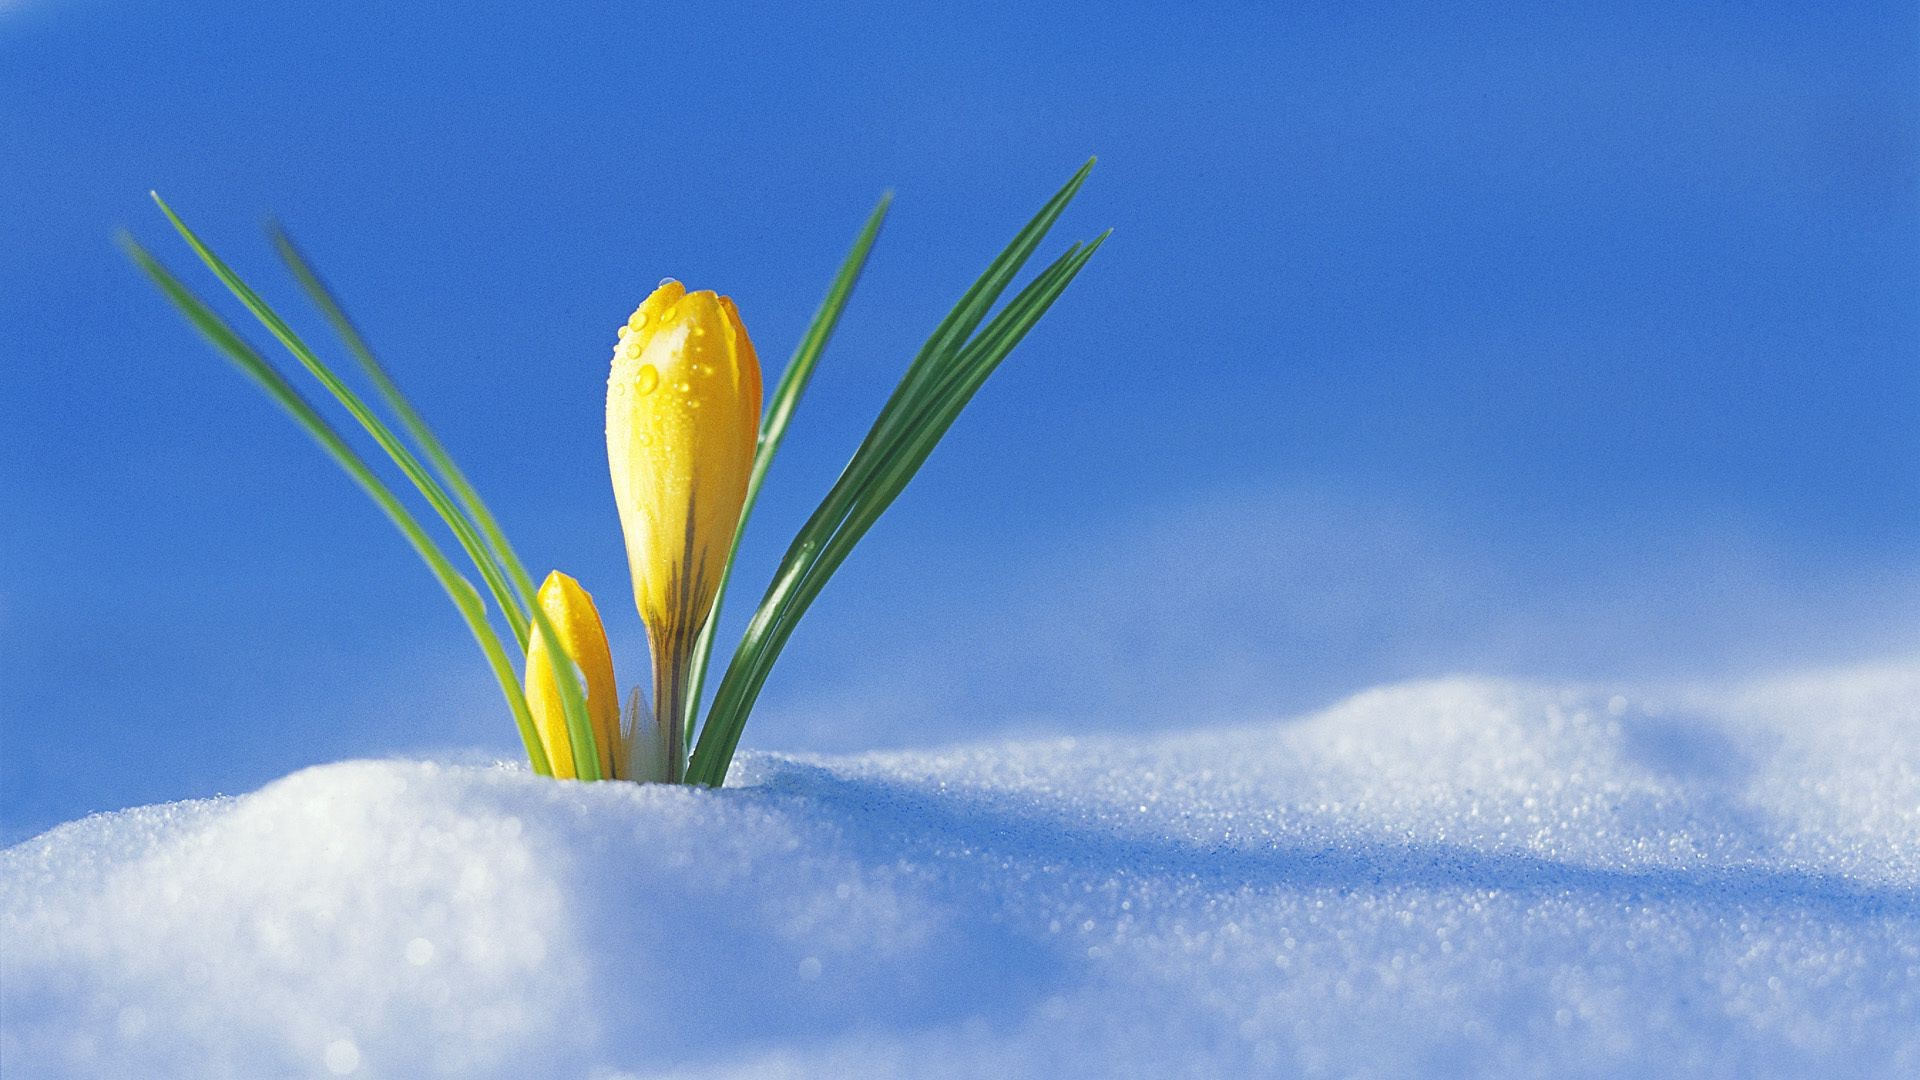 Best Bike Computer >> Yellow Crocus had sprouted snow - Phone wallpapers